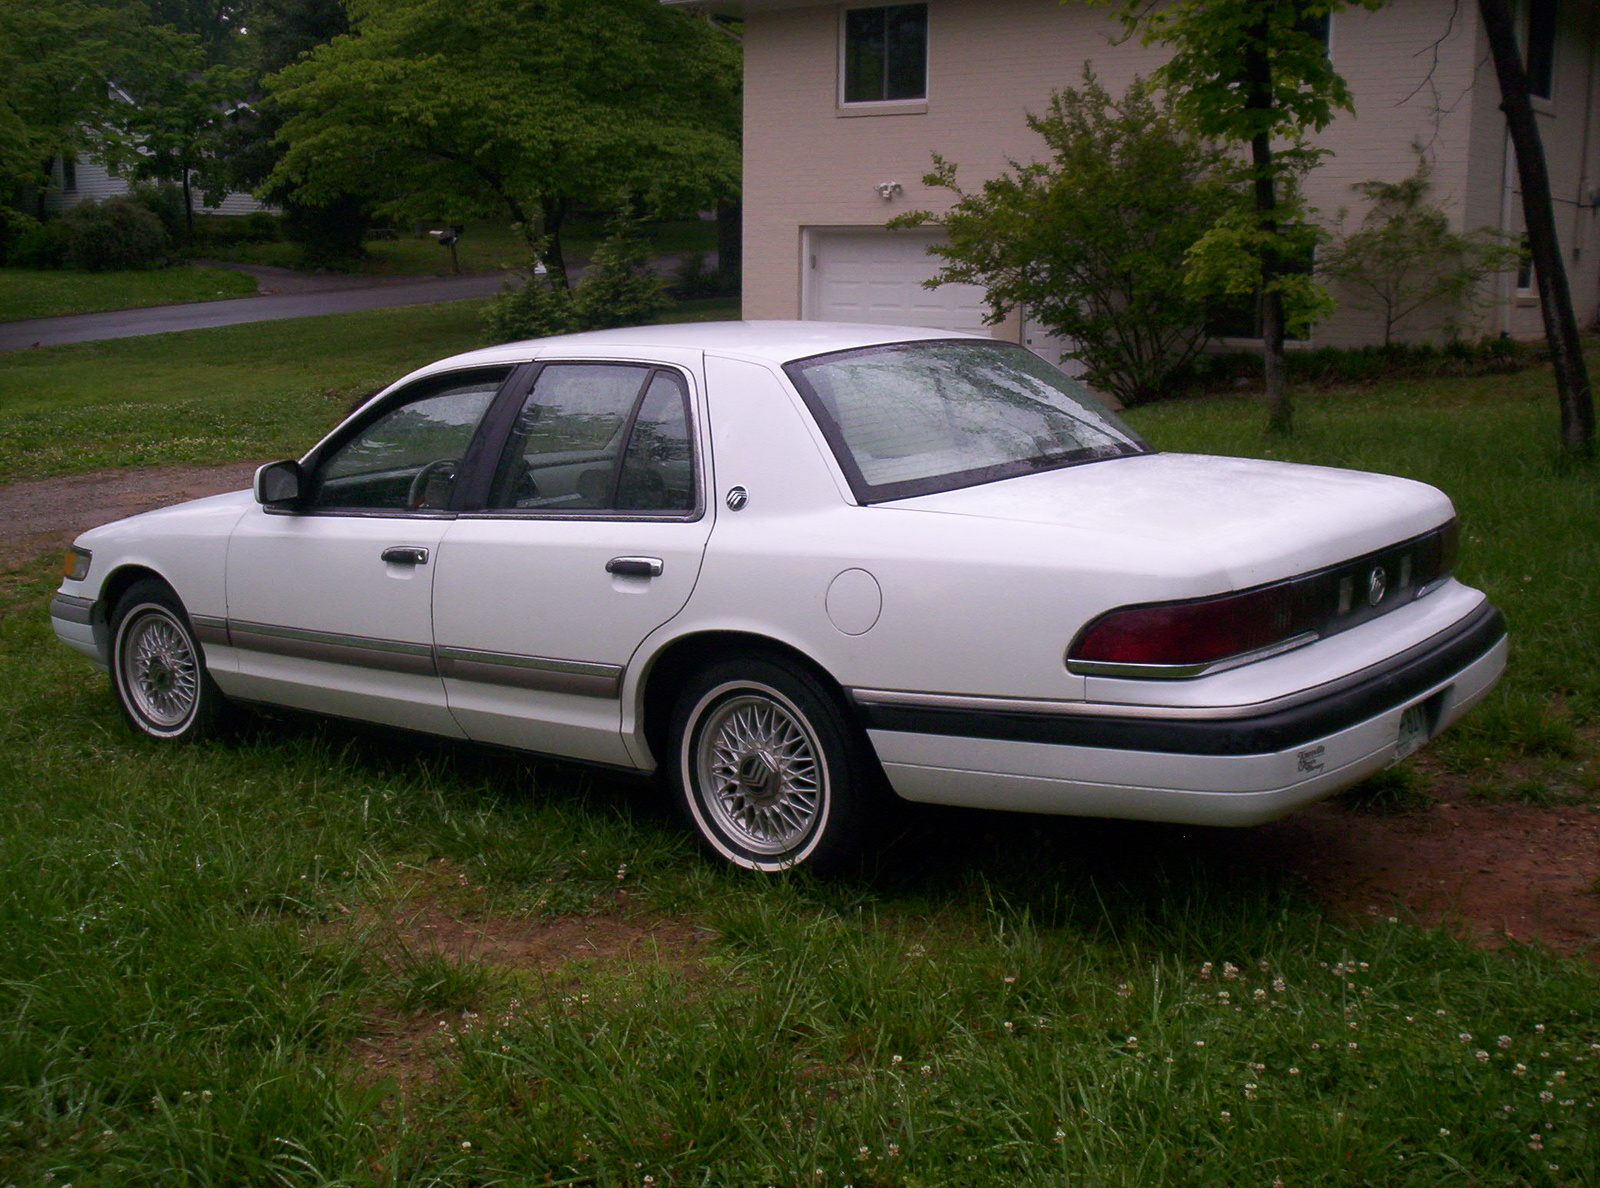 1992 Mercury Grand Marquis 4 Dr GS Sedan picture